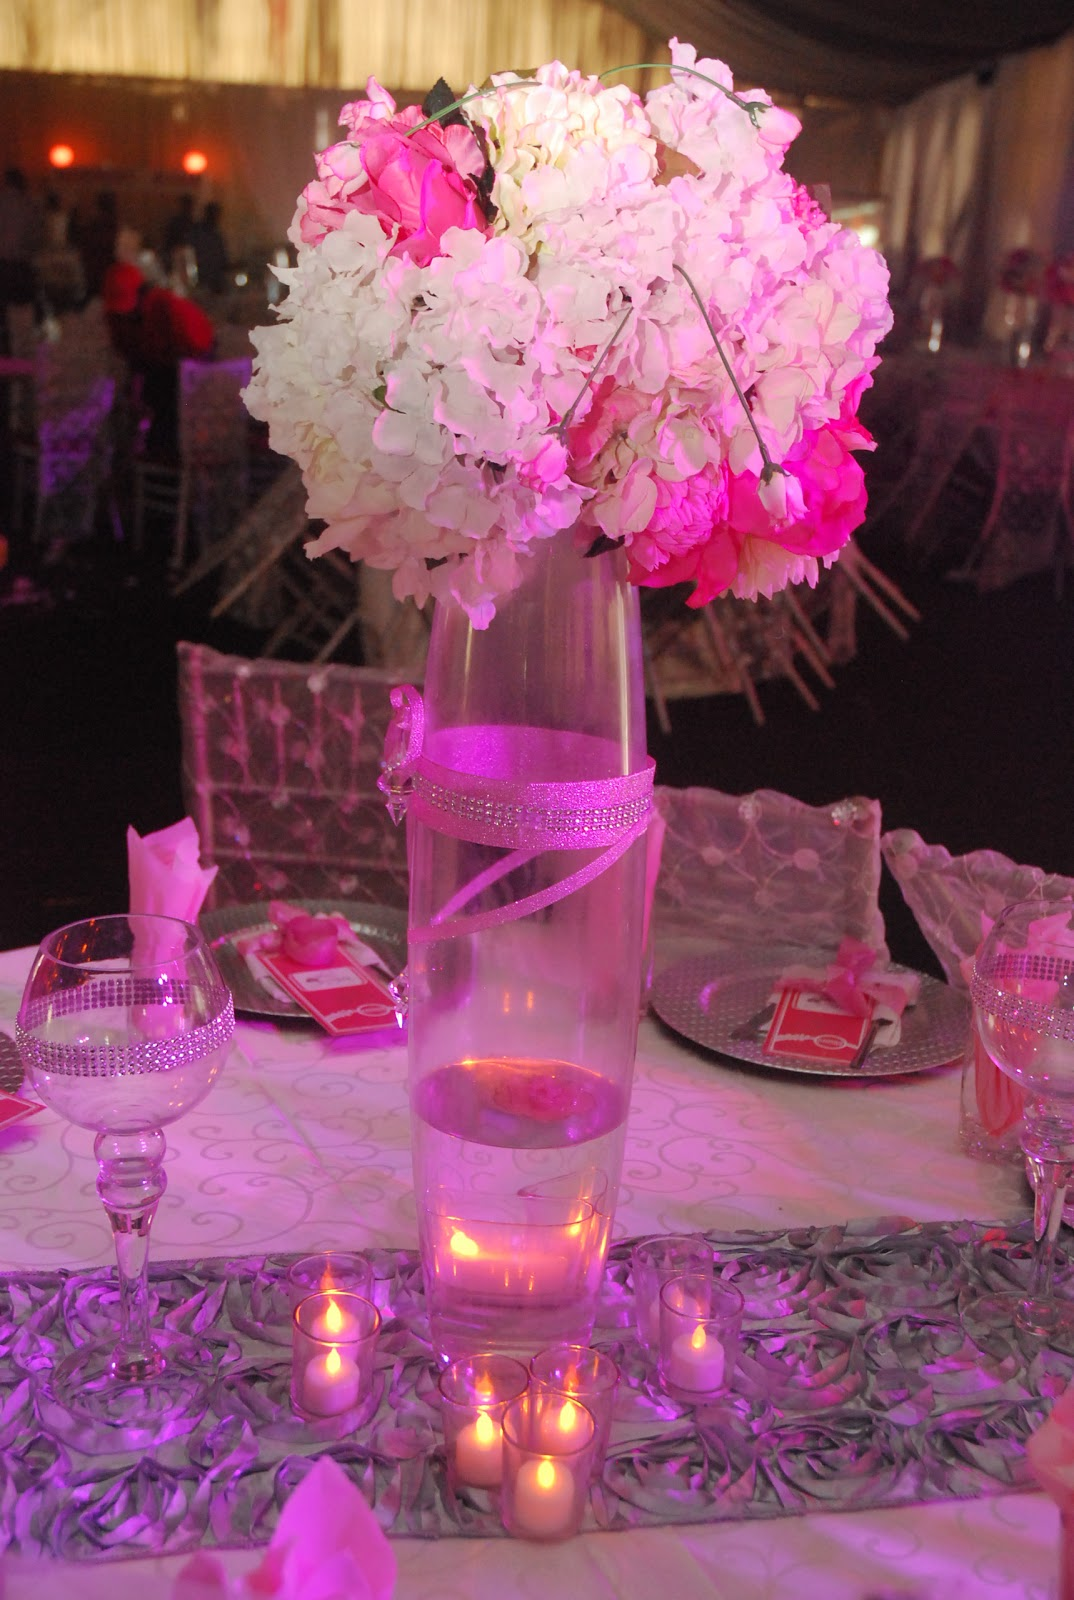 AQUARIAN TOUCH EVENTS NG: WEDDING CENTREPIECES